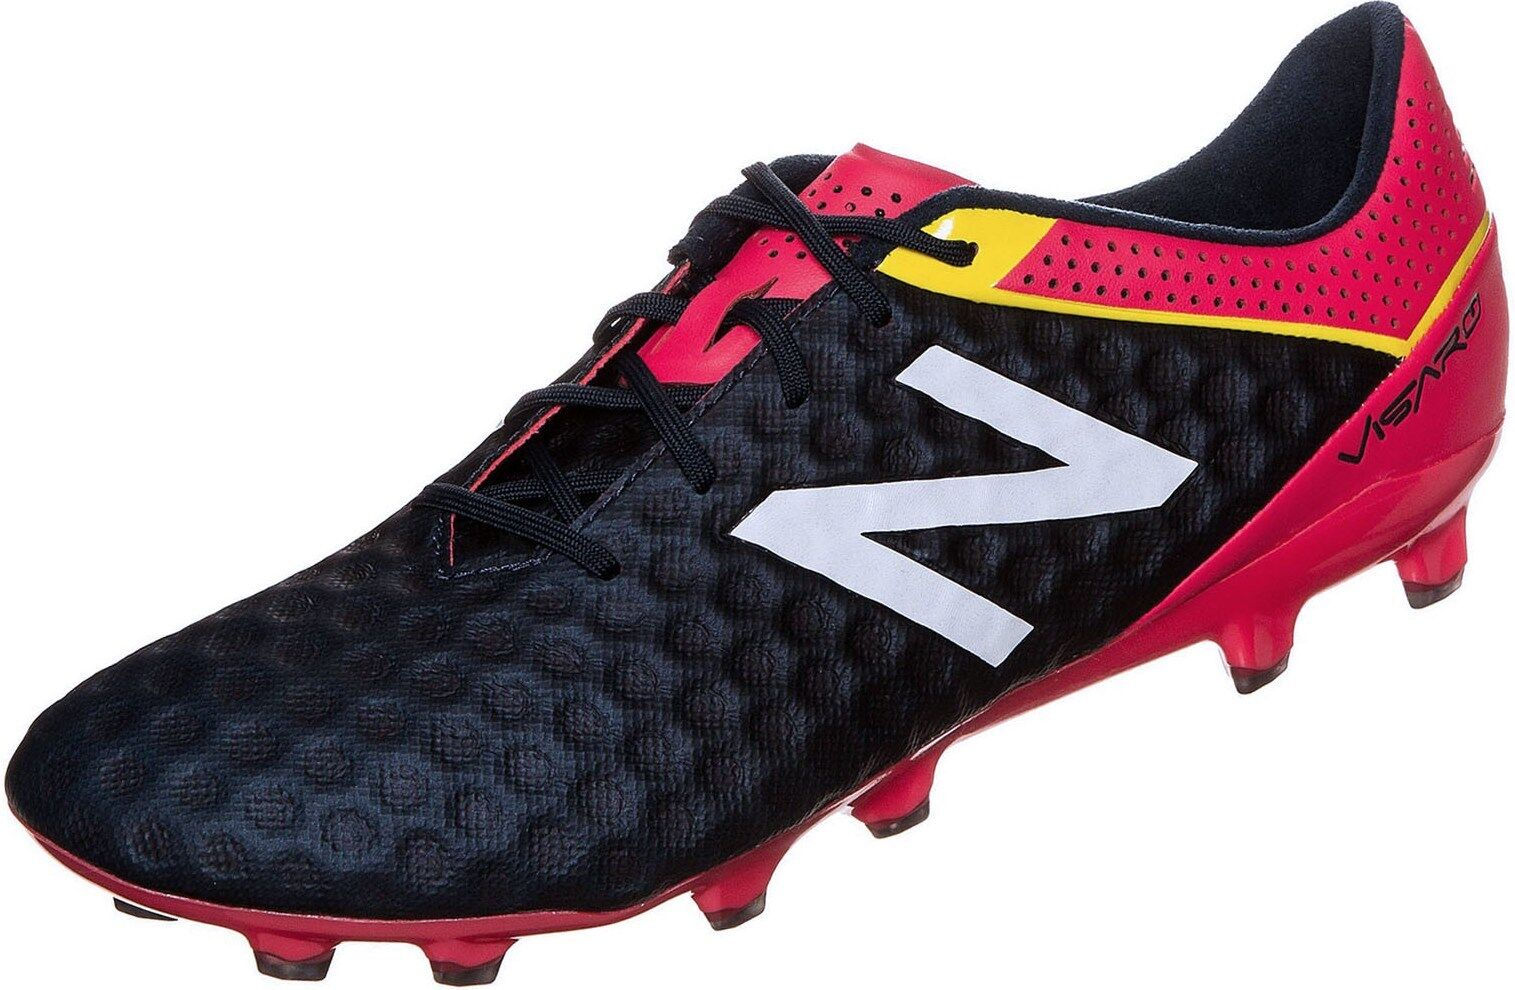 NEW Balance visaro PRO FG Scarpe Calcio Calcio Scarpe Firm Ground NUOVO